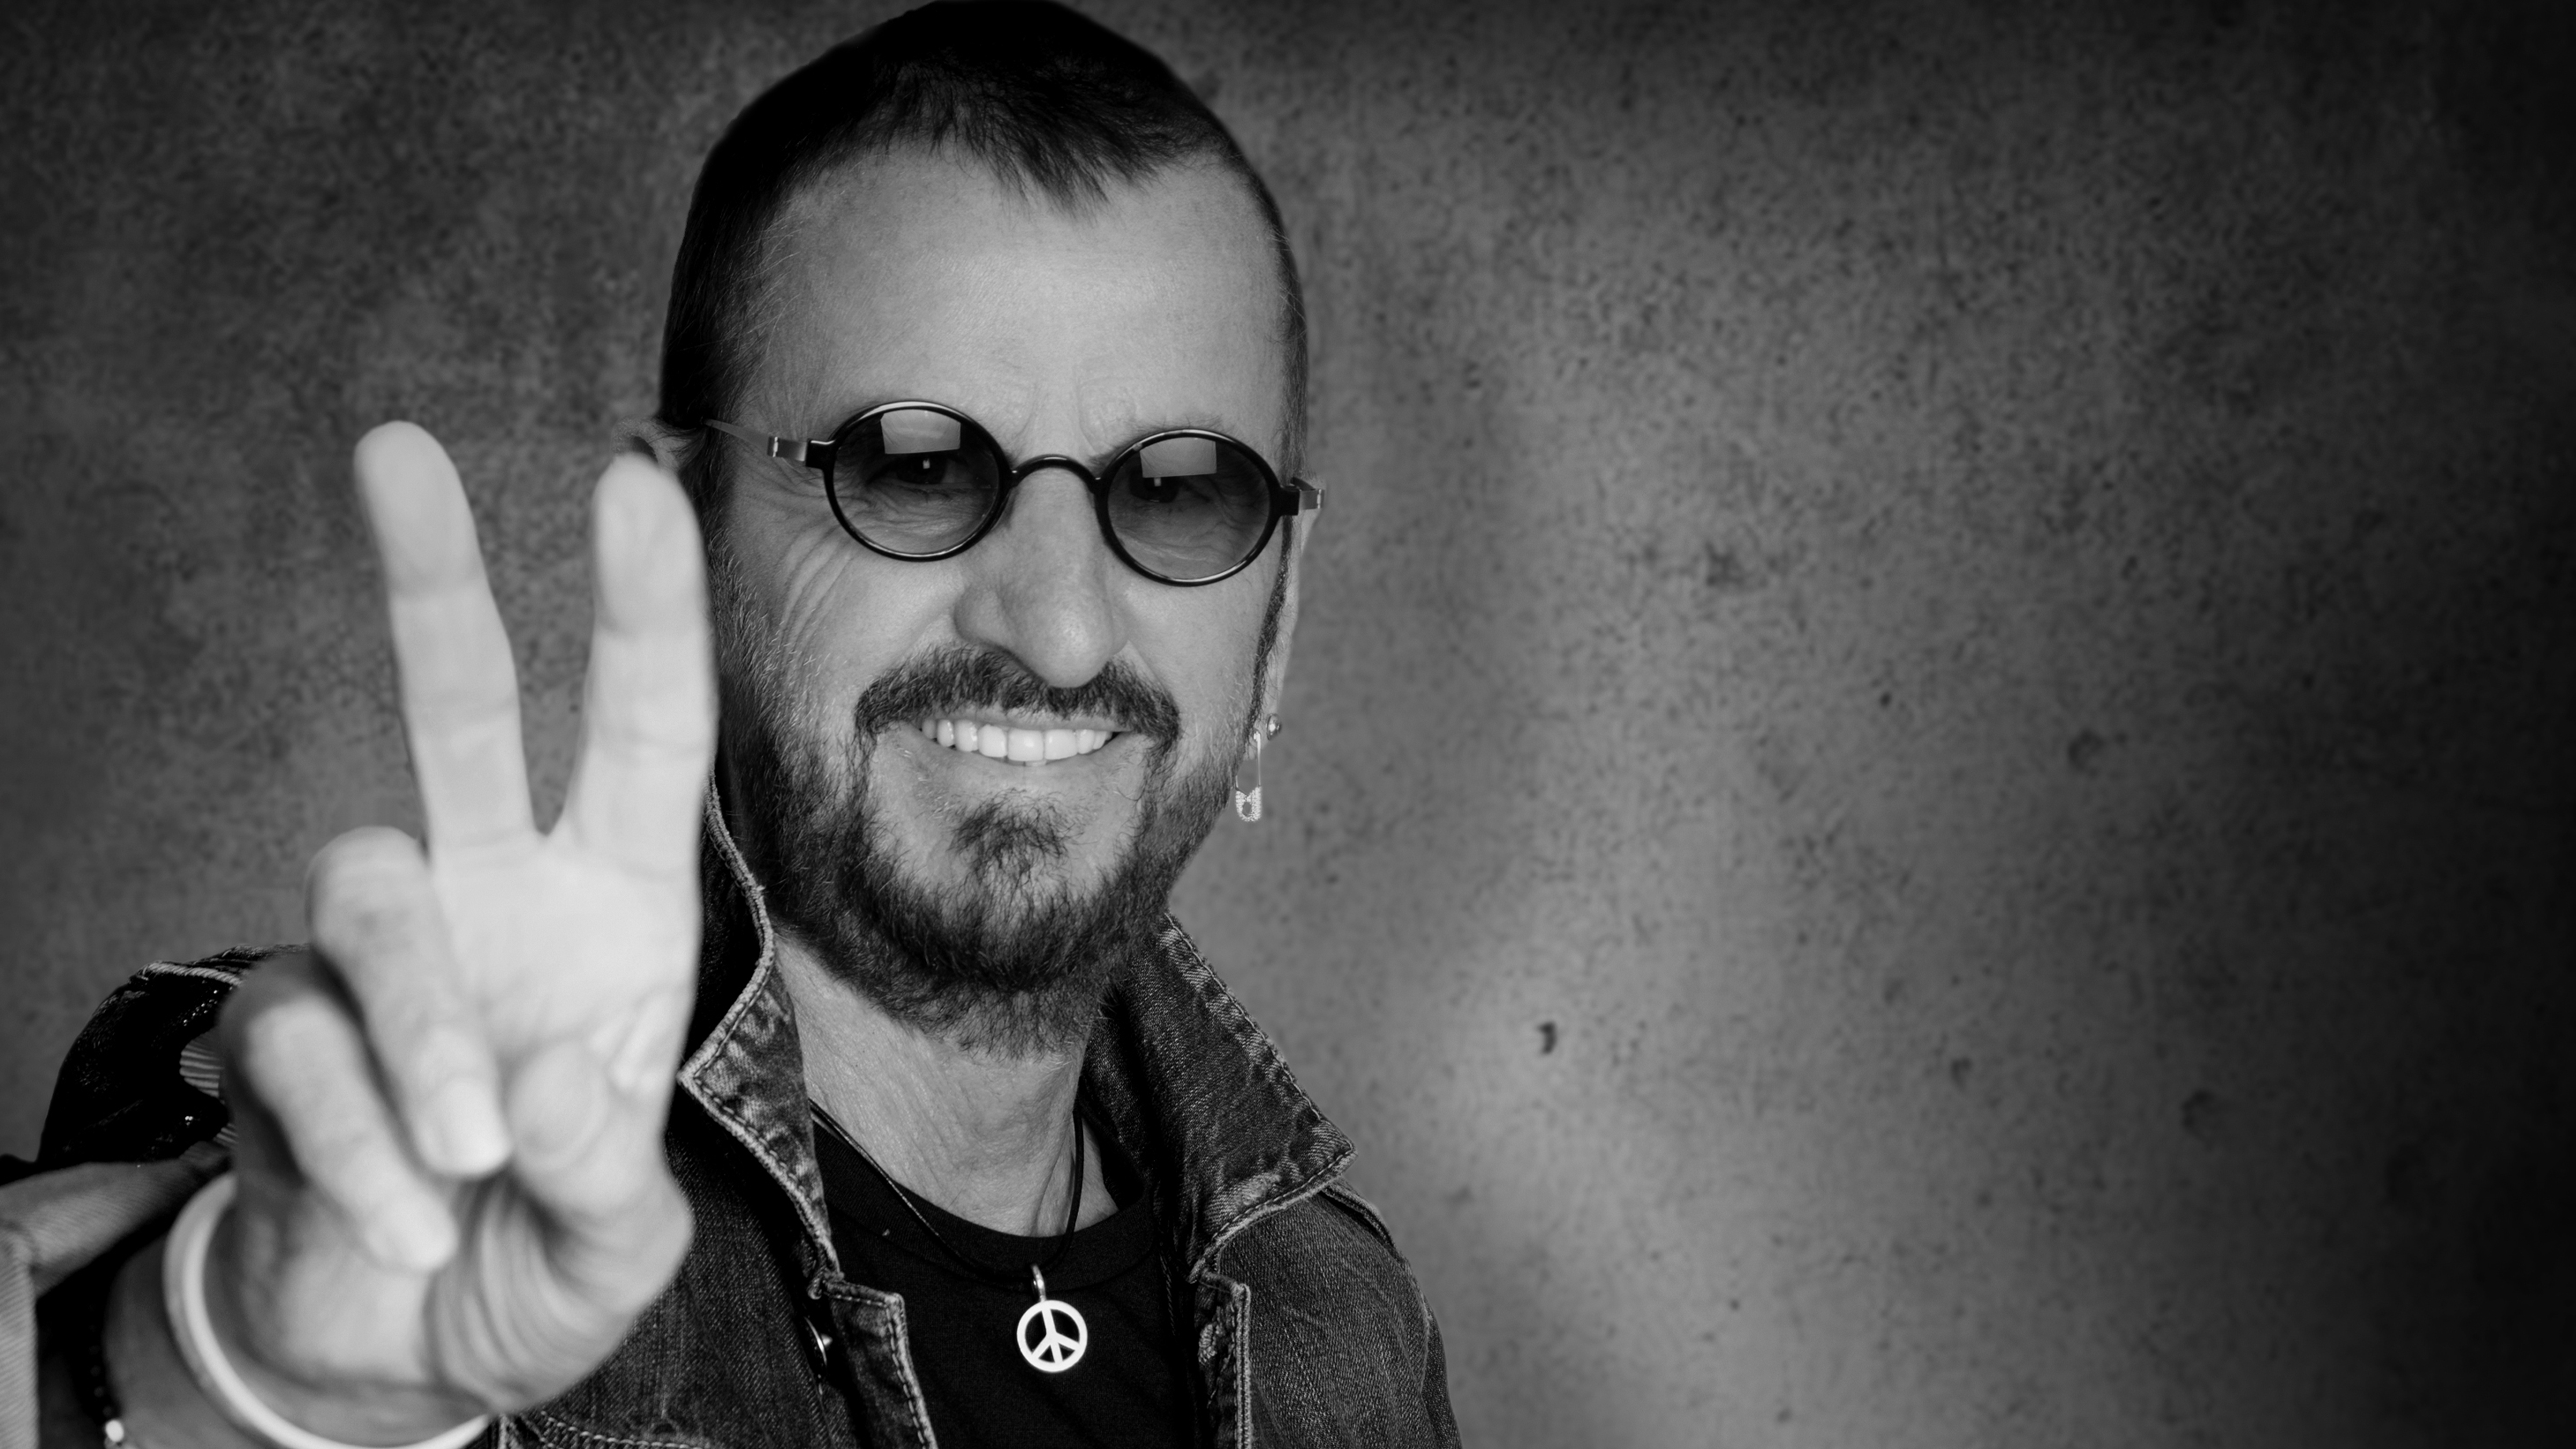 8 Songs A Week: Vote for your favorite Beatles and solo songs sung by Ringo Starr (POLL CLOSES 7/2/2021)